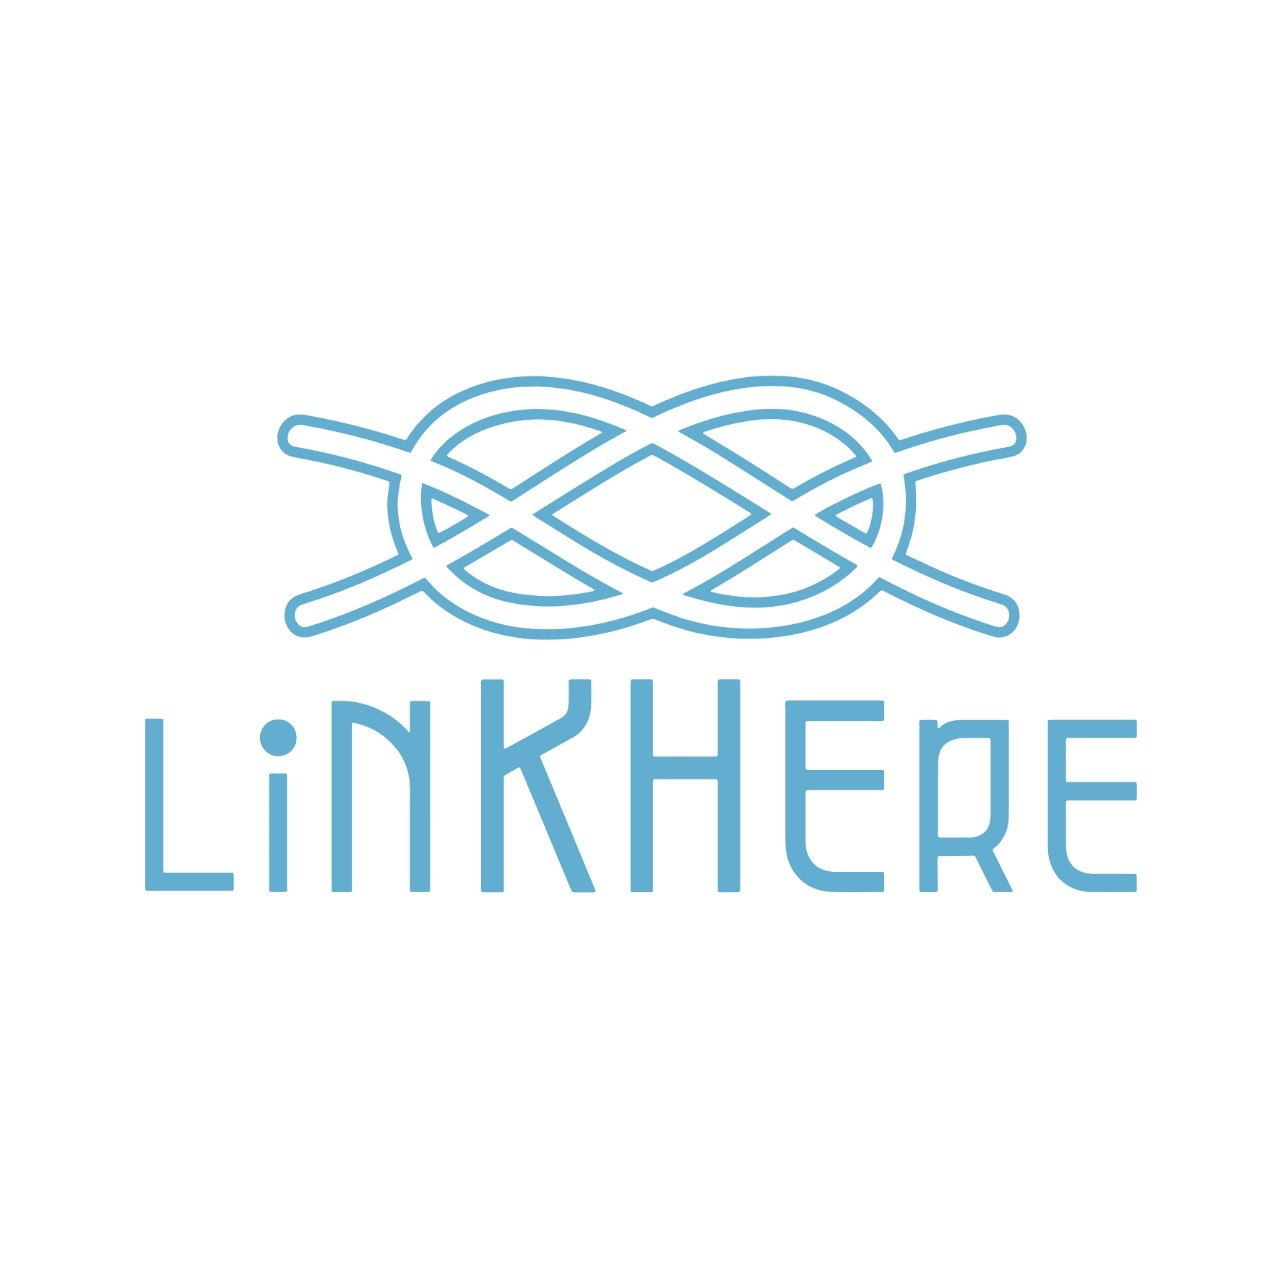 LiNKHERE,text,logo,font,product,line